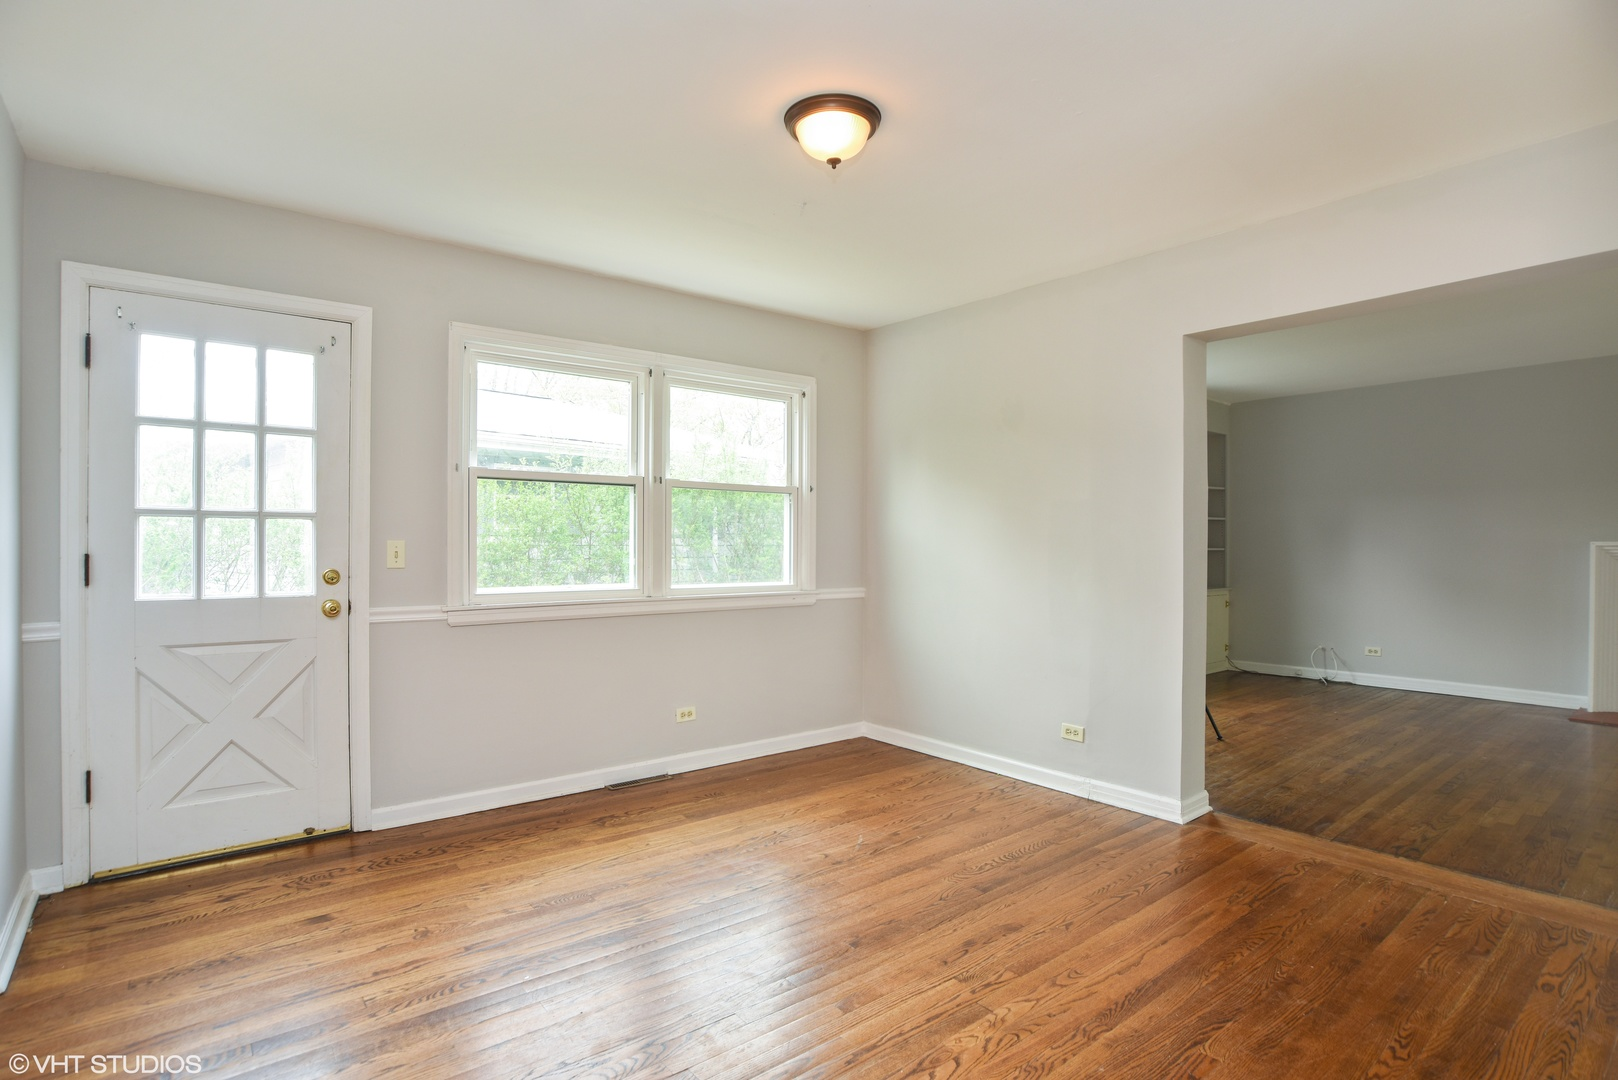 east baldwin chat Find a real estate agent in east baldwin, me who will answer any questions you have about buying or selling a home in east baldwin contact a east baldwin real estate broker today  call: 866-732-6139 live chat commercial real estate.